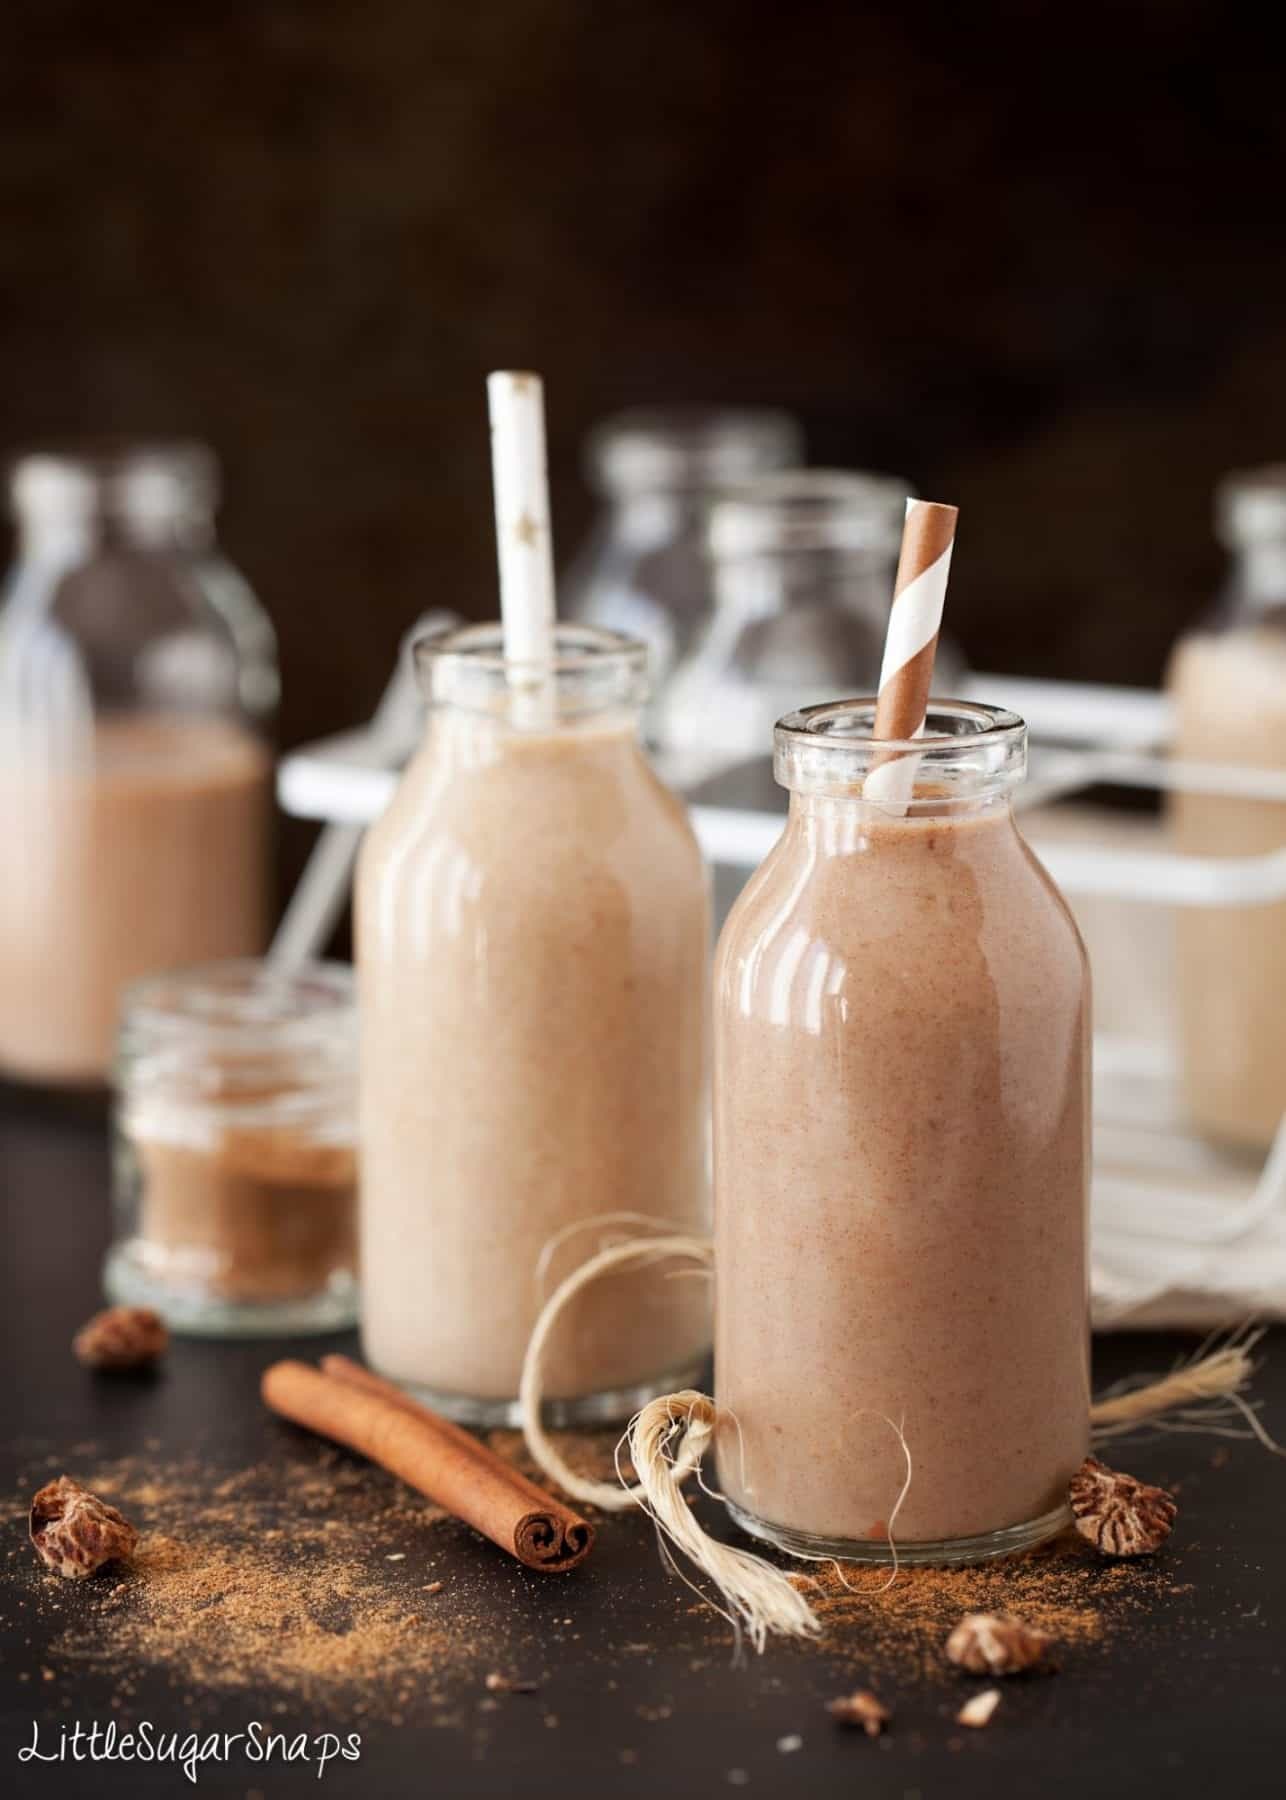 Date milkshake presented in small glass milk bottles on a black worktop. String, cinnamon stick, nutmeg and ground spices on the worktop near the bottles